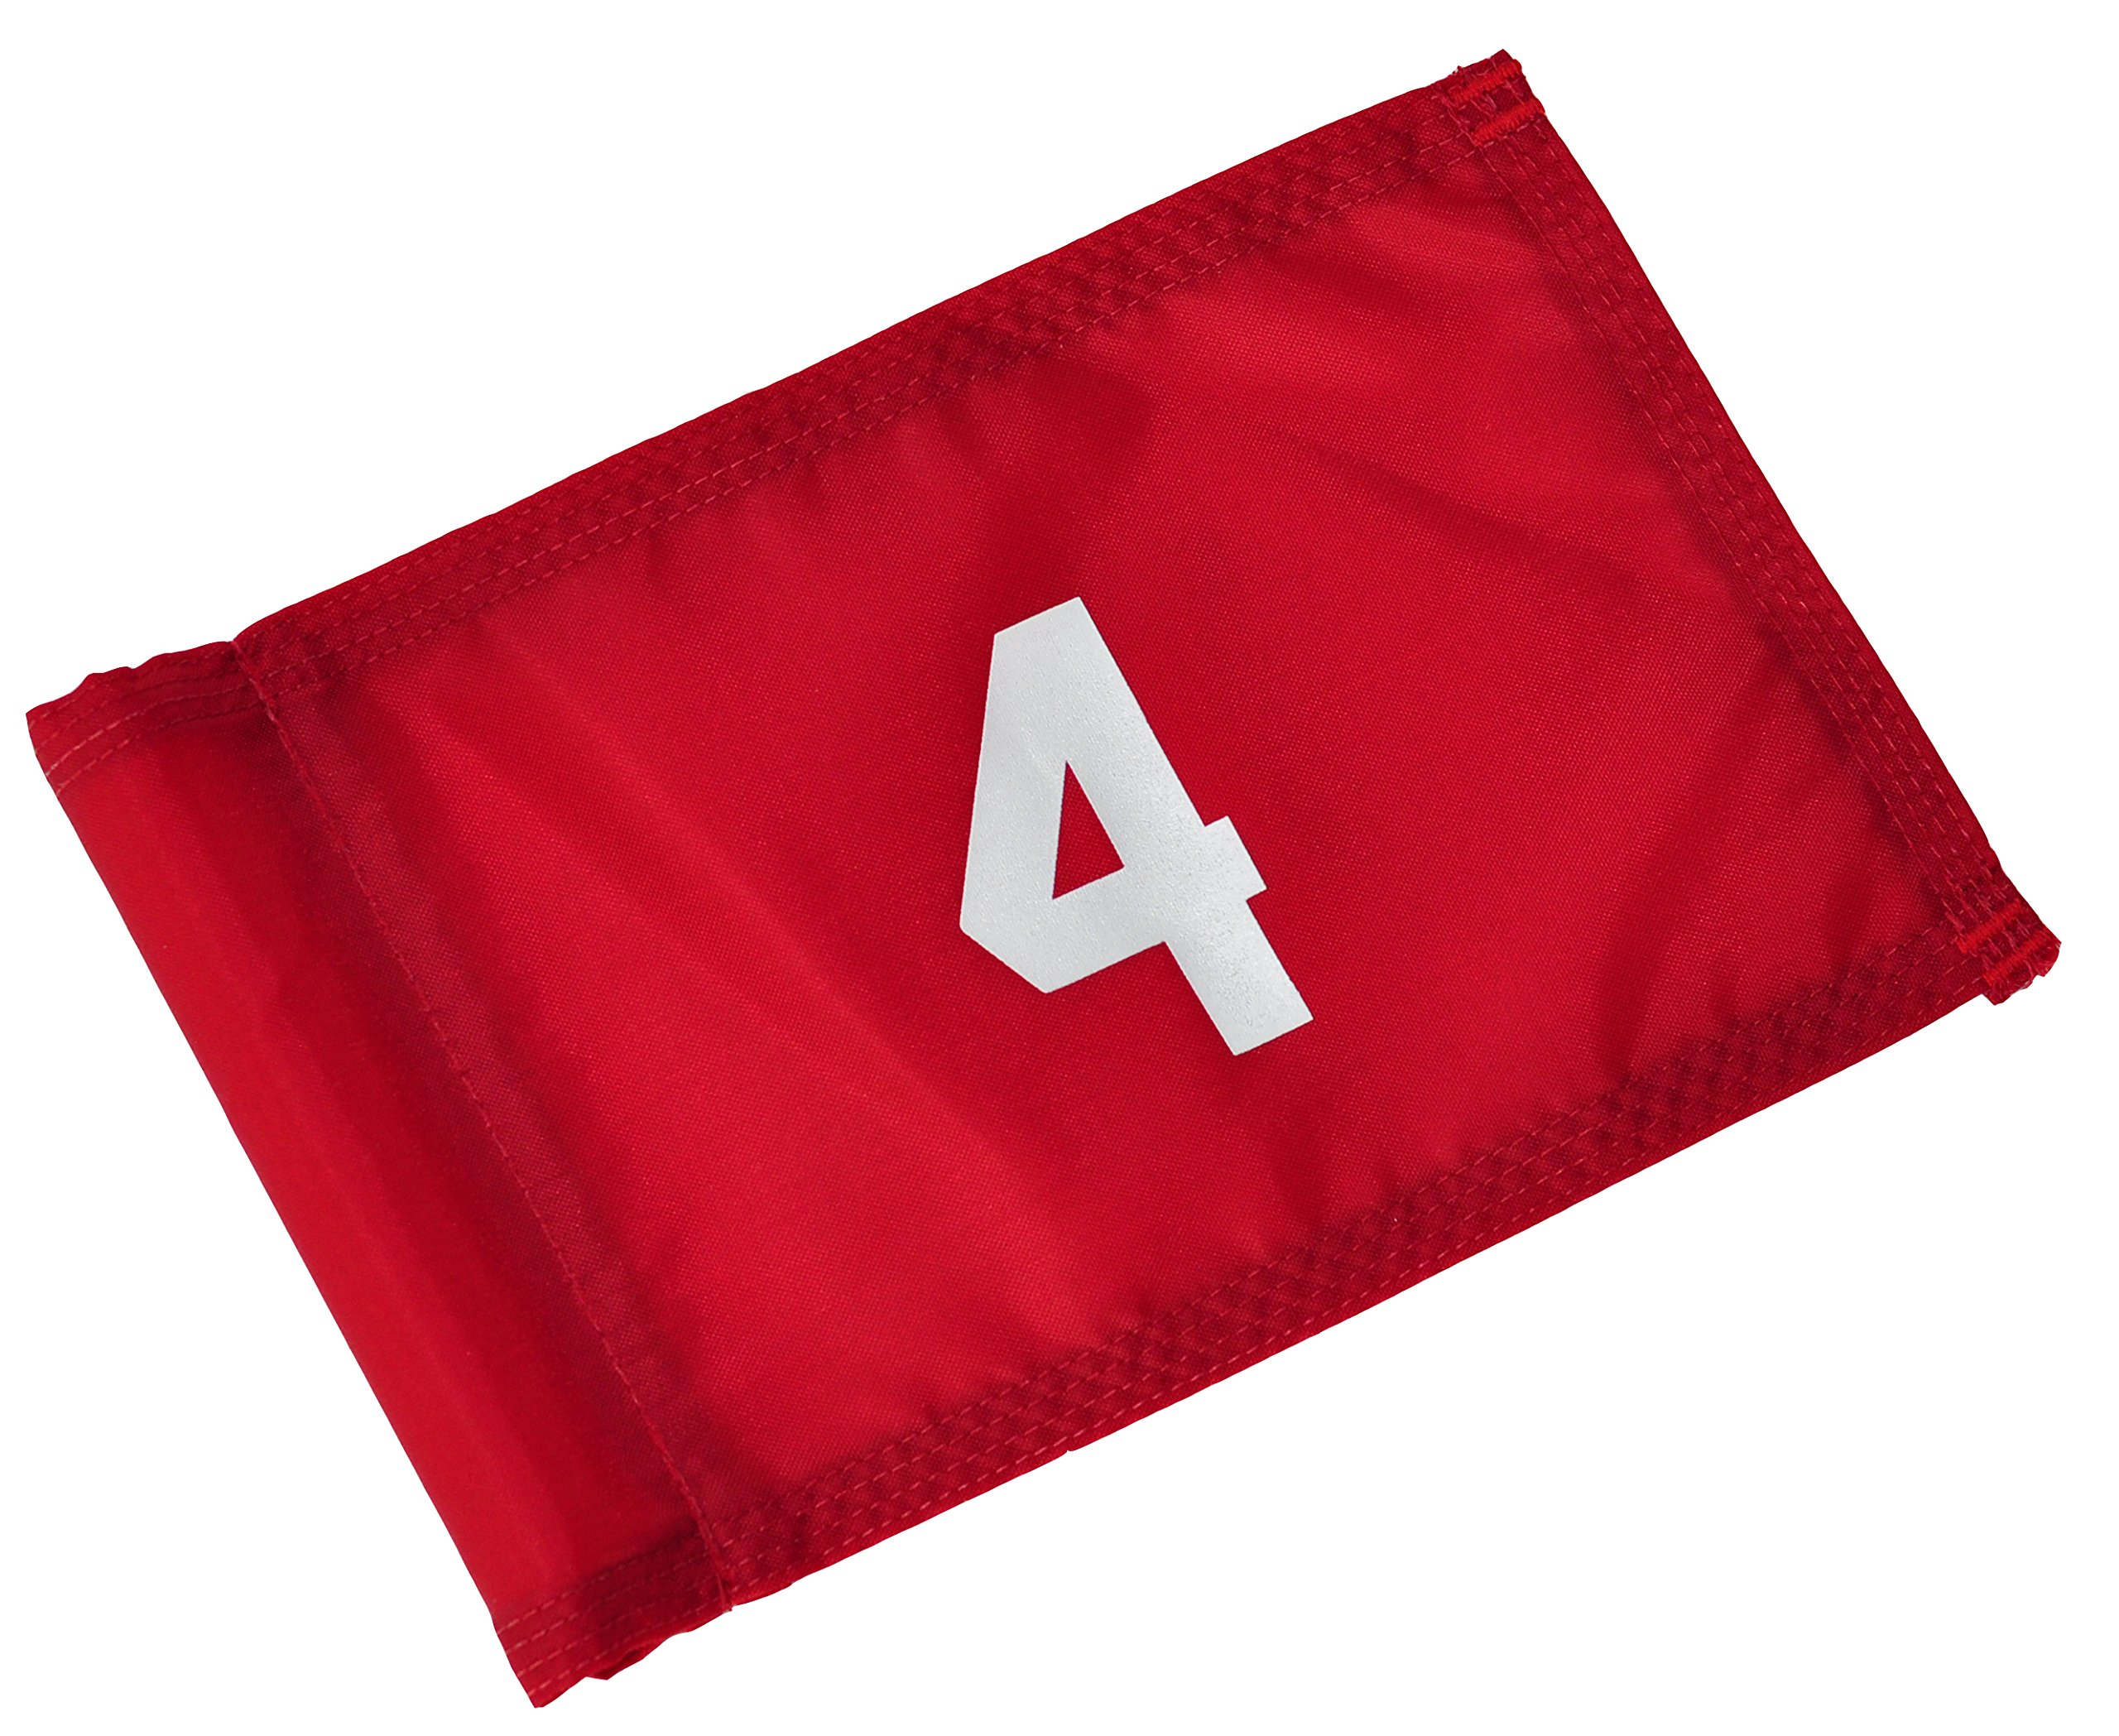 Backyard Putting Green Numbered Golf Flag - Numbered Golf Flag - Red and White 1, 2, 3, 4 (Red with White Numbers, # 4)